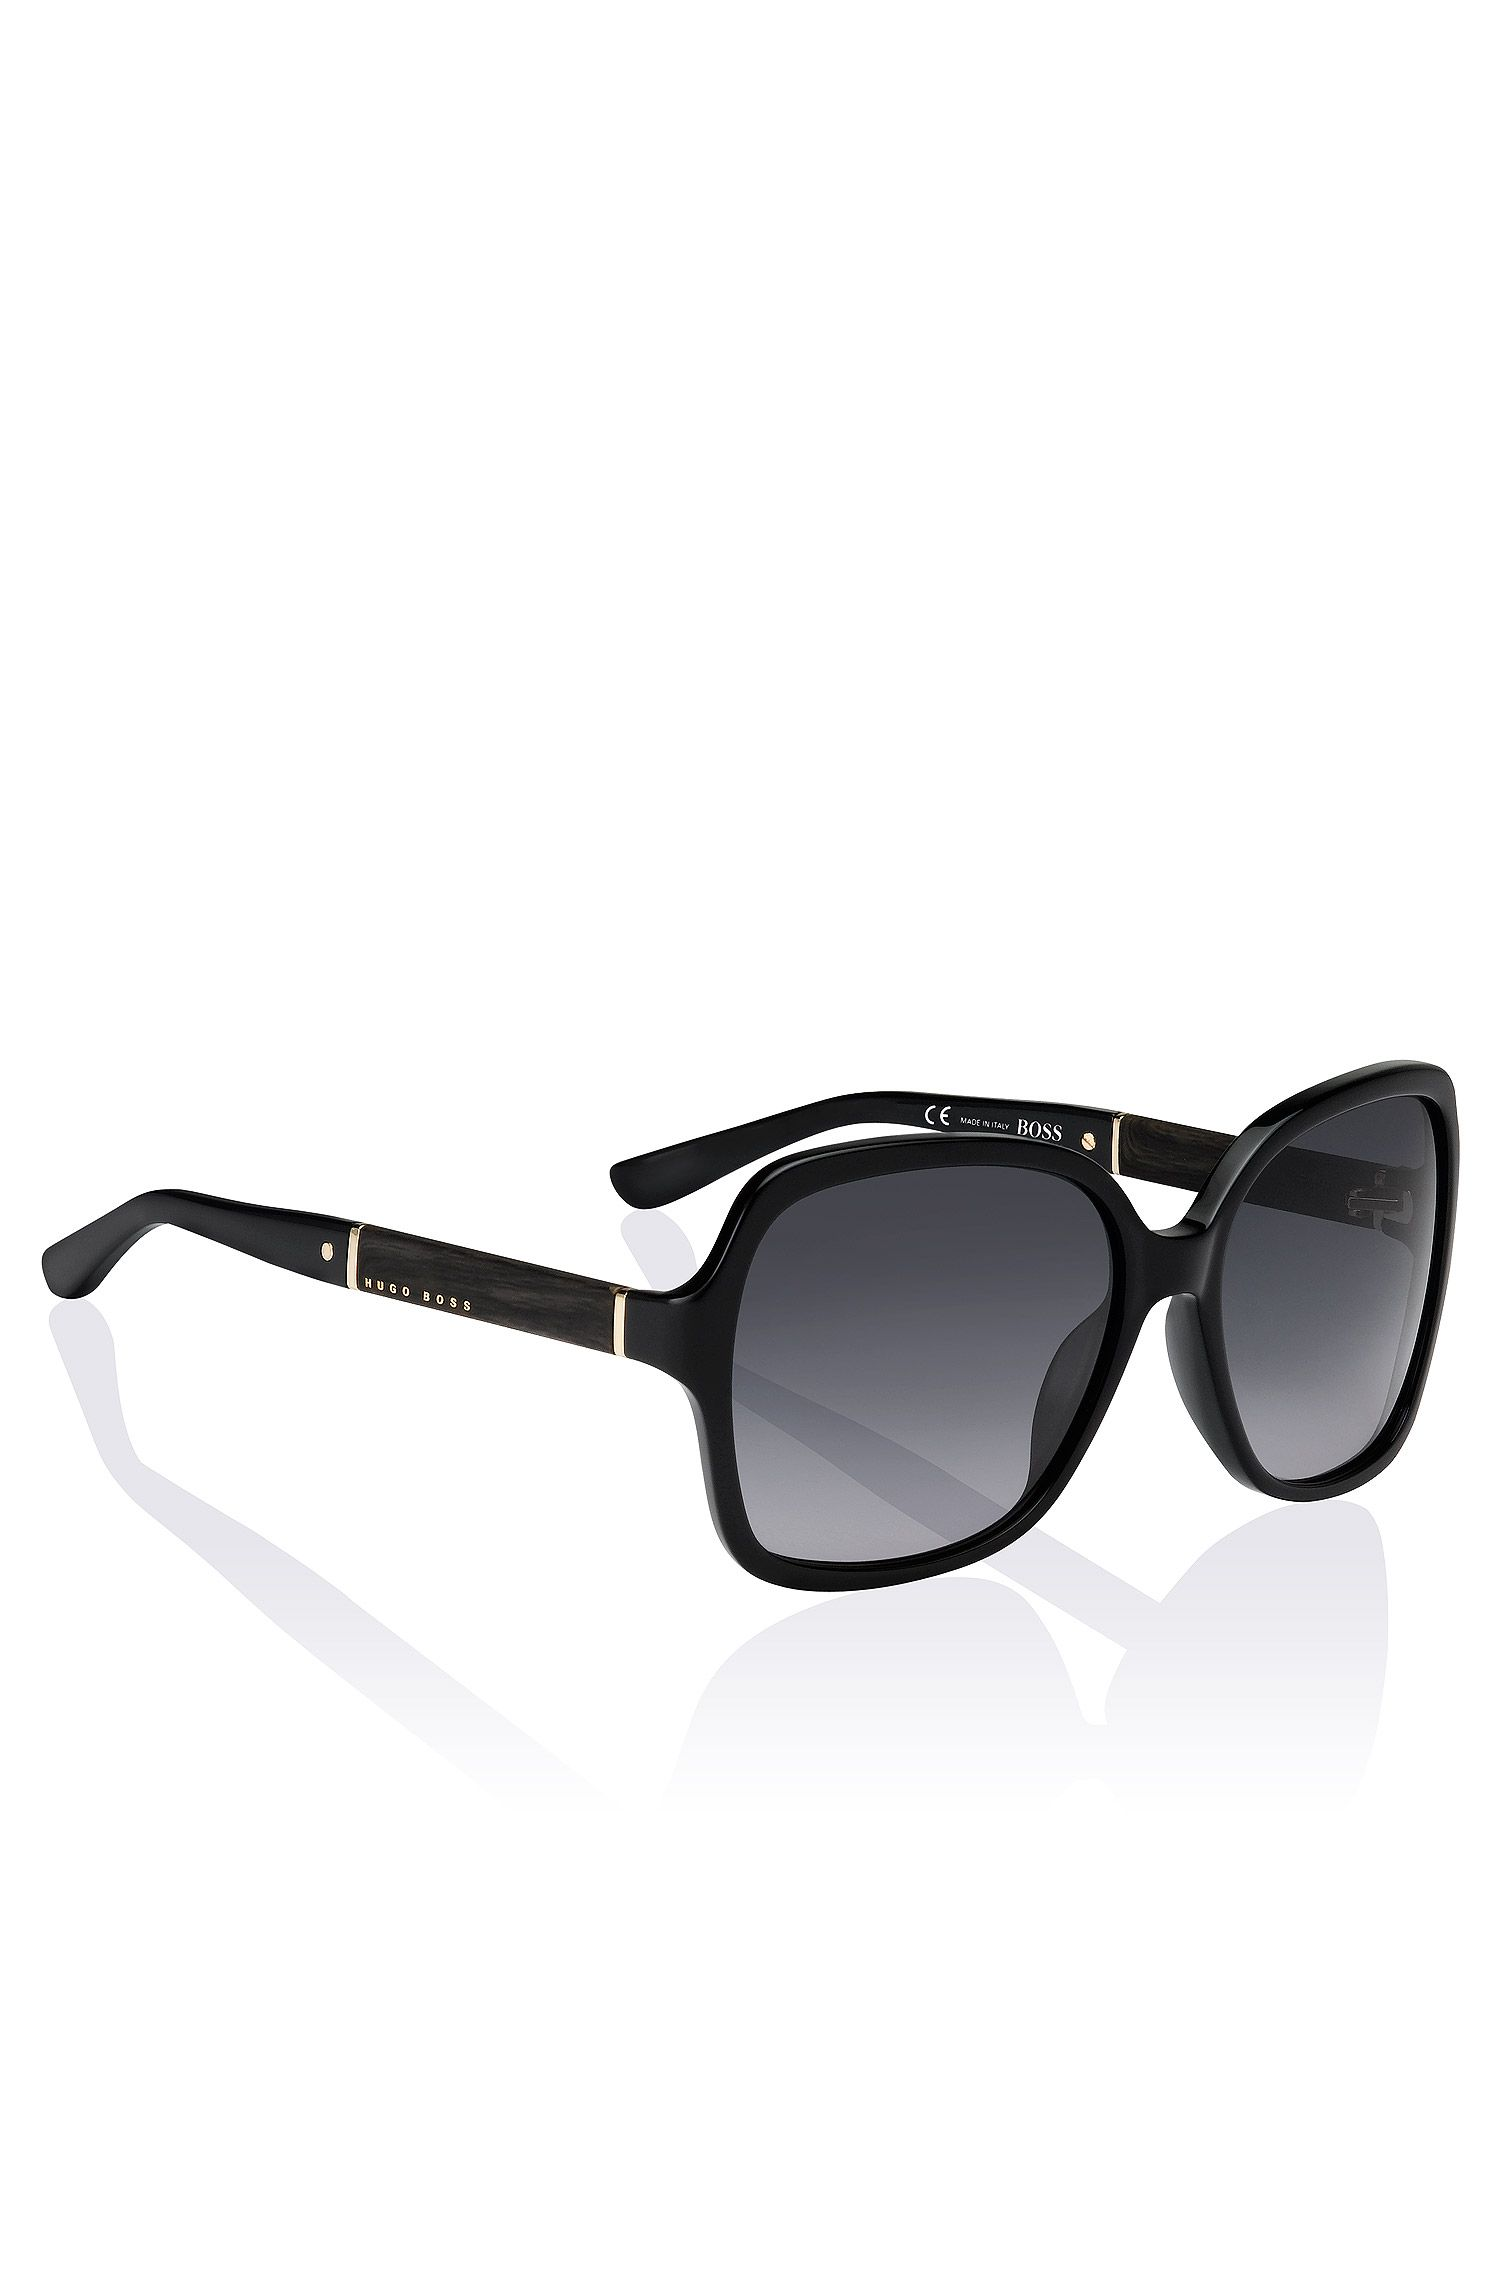 'BOSS 0664/S' acetate sunglasses